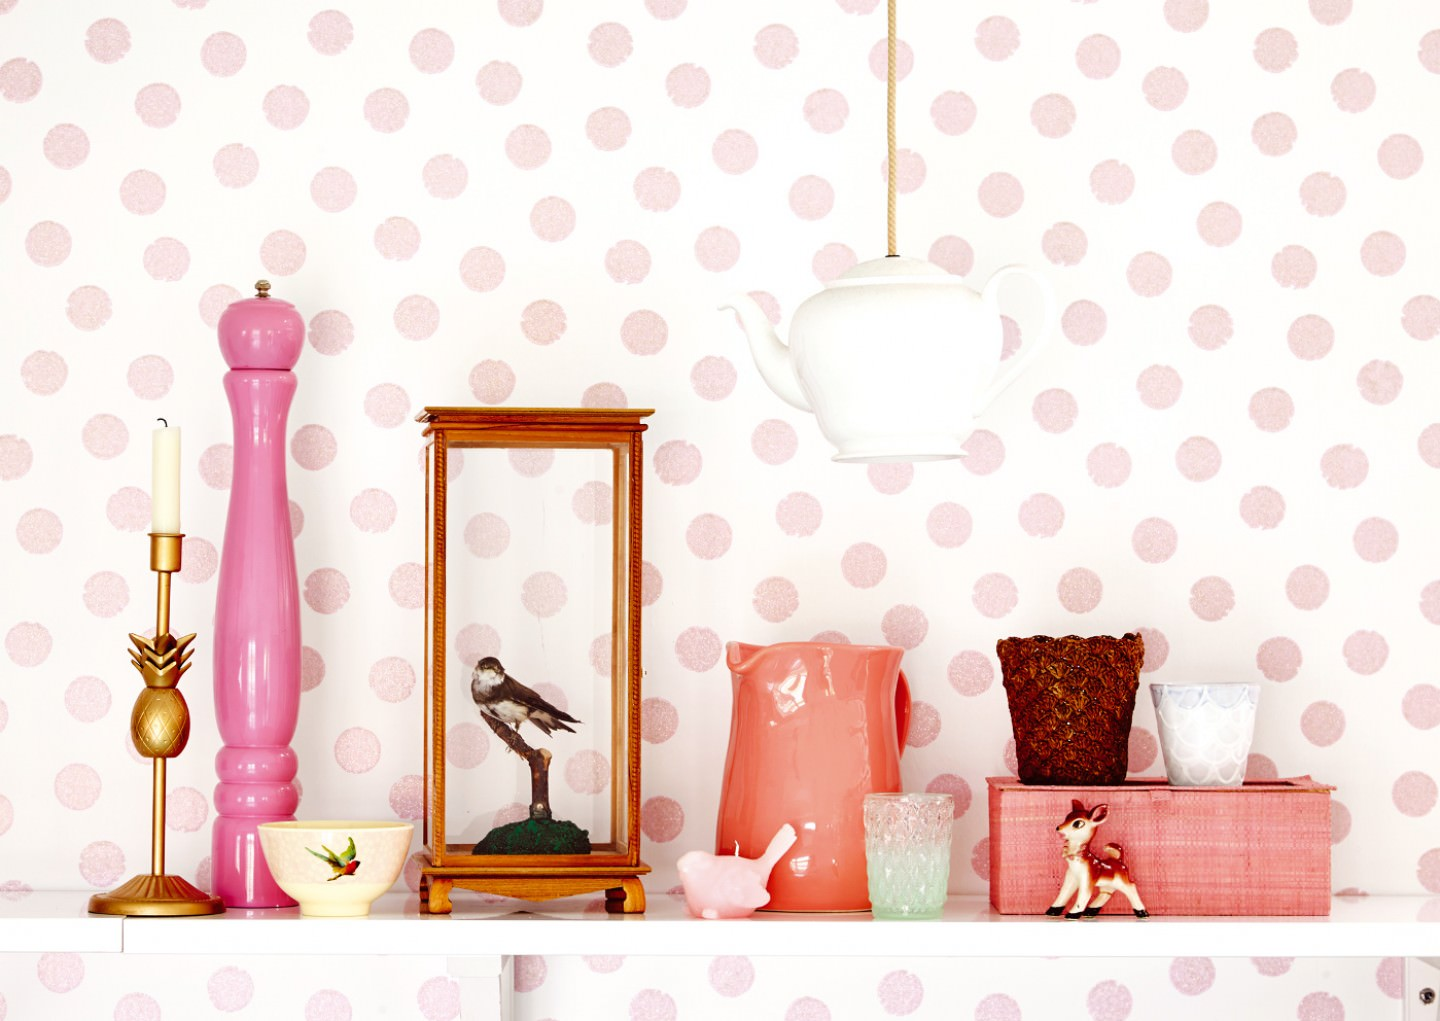 Timeless Wallpapers - polka-dot walls